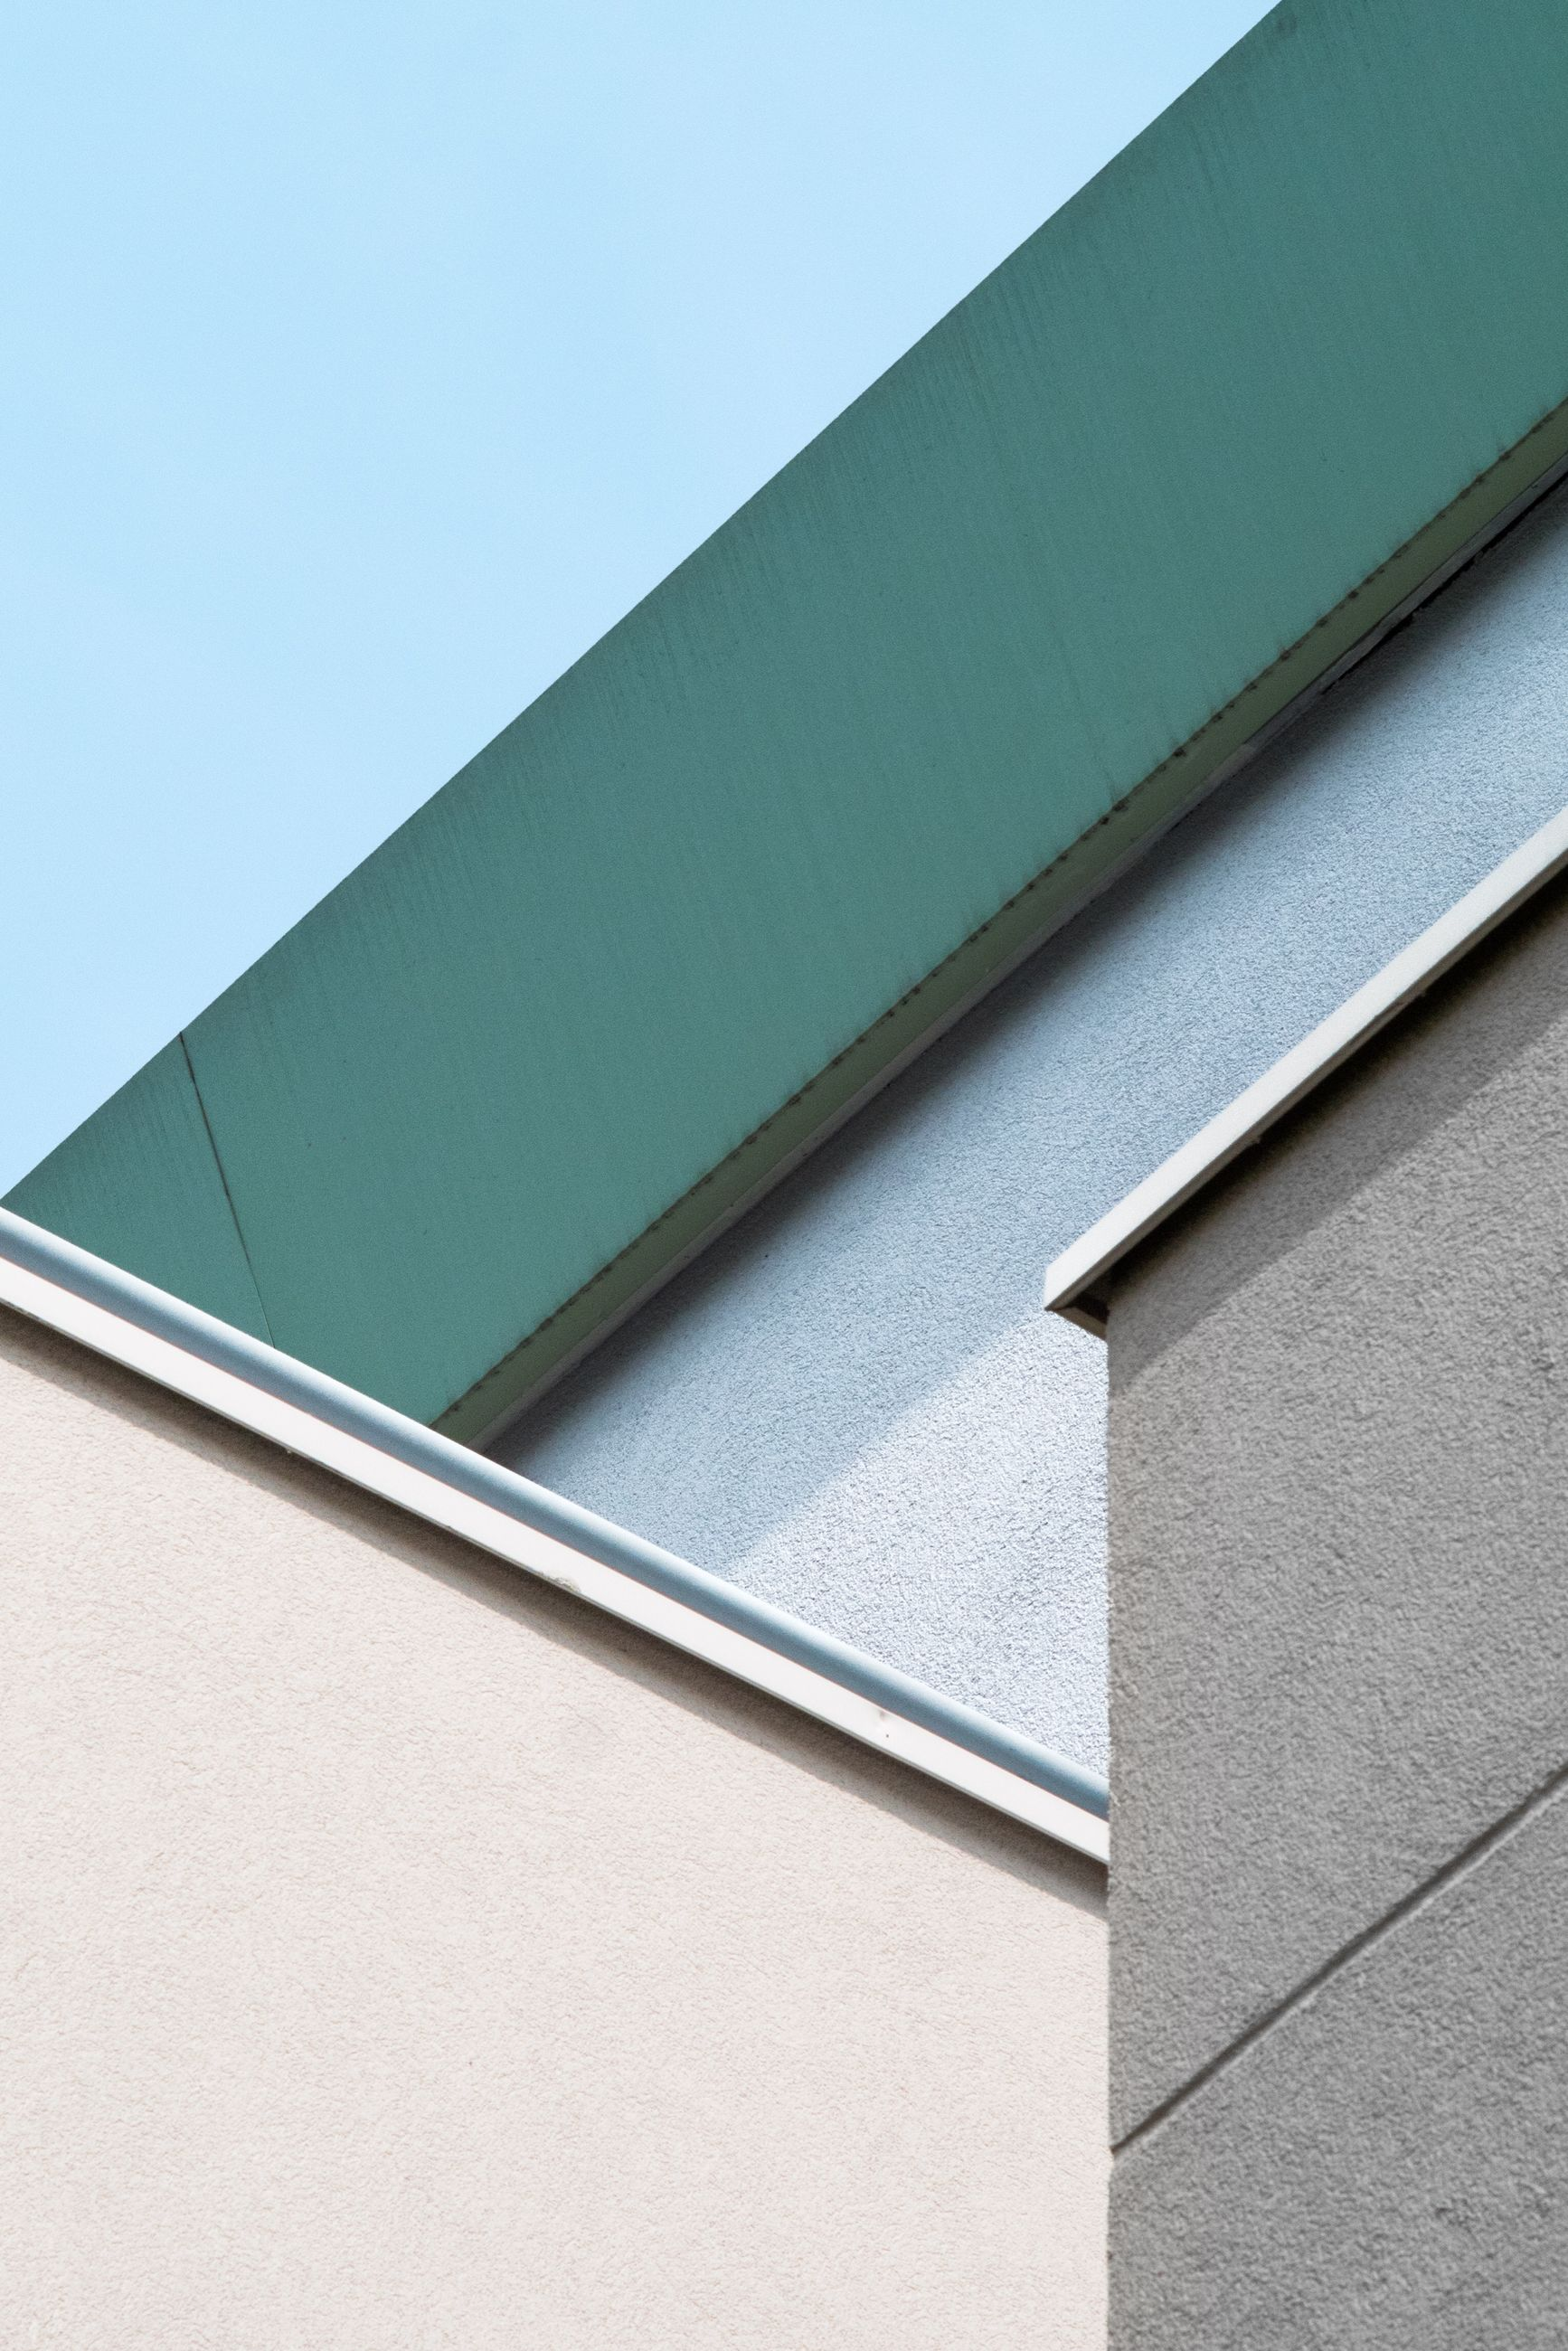 architecture, built structure, building exterior, no people, low angle view, day, building, blue, sky, copy space, outdoors, wall - building feature, clear sky, roof, window, nature, close-up, sunlight, green color, pattern, turquoise colored